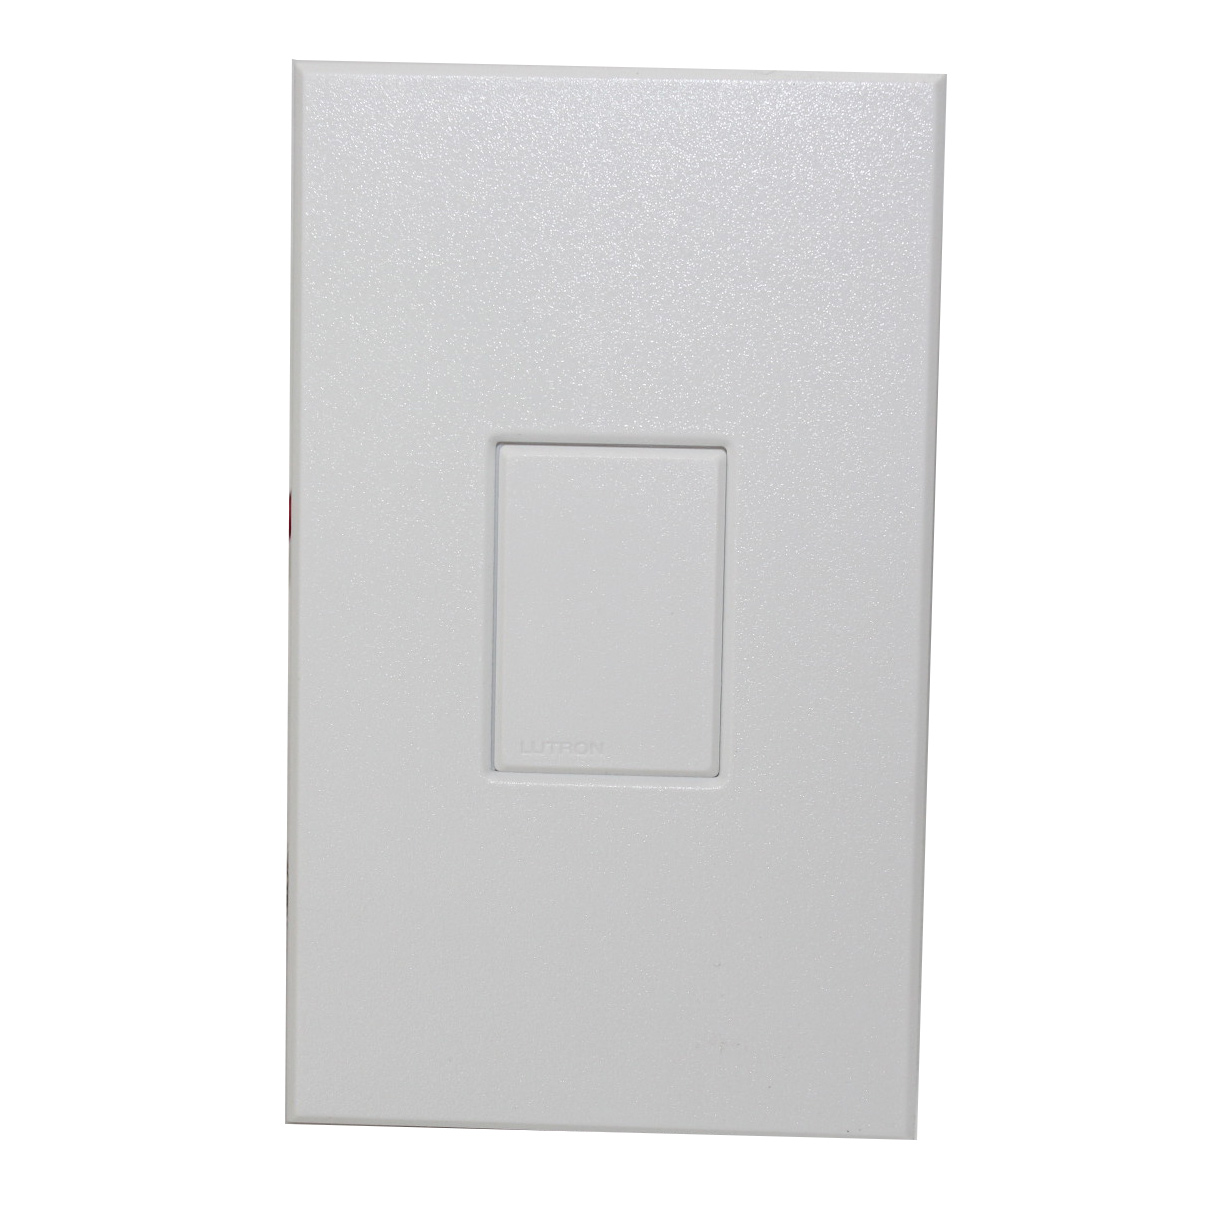 Lutron vets 1000 wh white 120v 1000w vareo electronic for 120 volt magnetic door switch